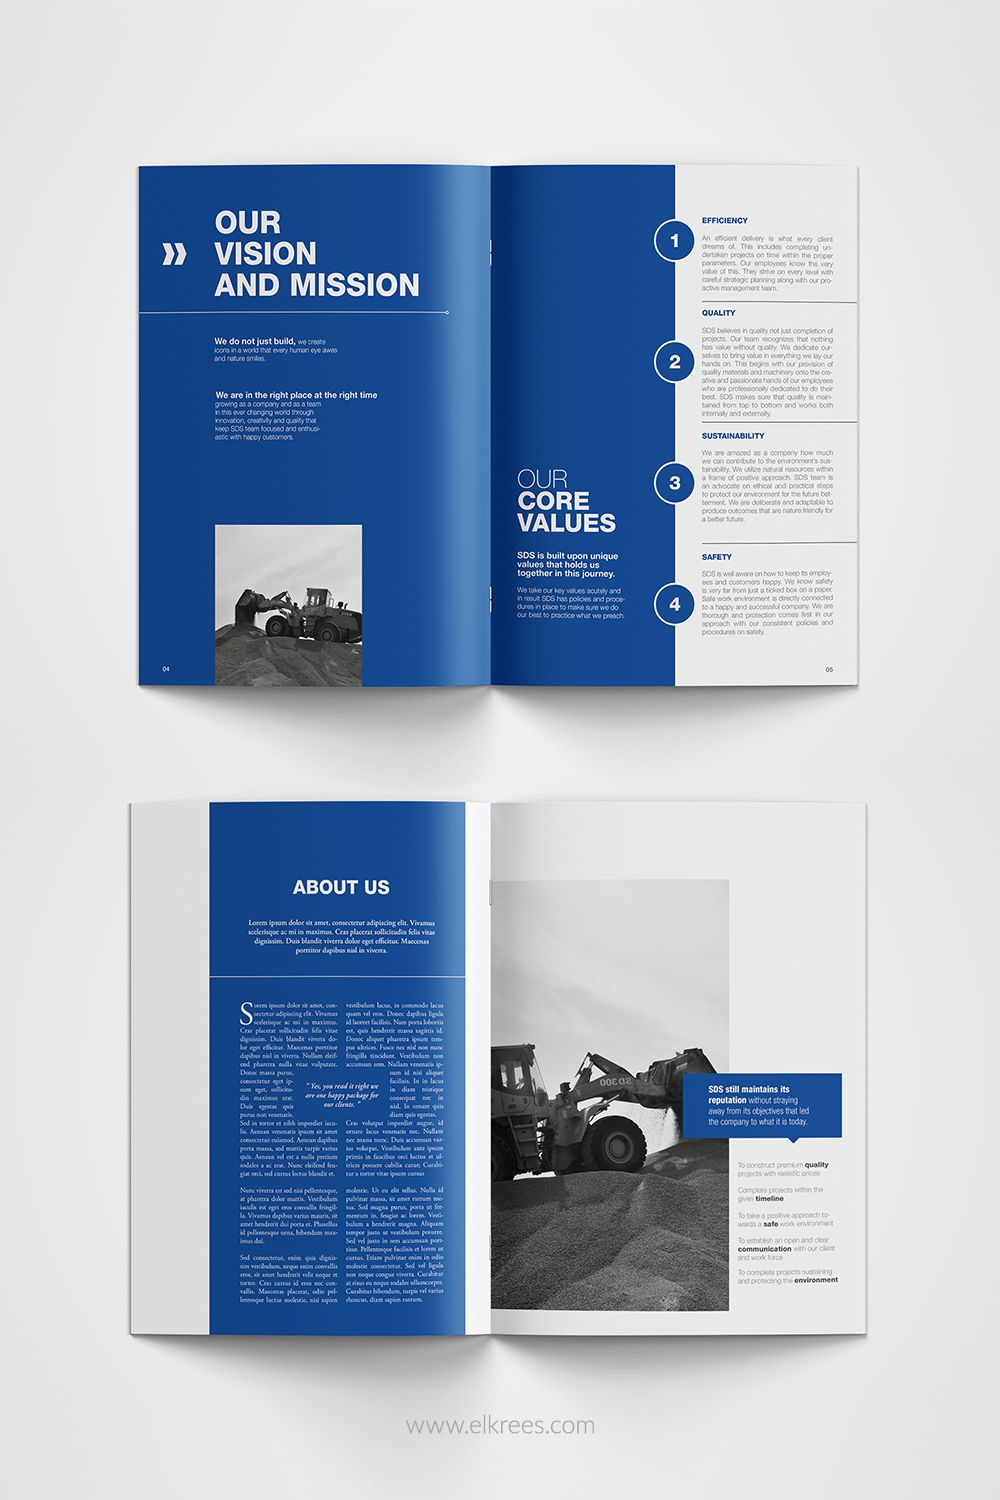 Modern Business Profile Design Layout For A Construction Company In 2020 Company Brochure Design Brochure Design Layouts Booklet Design Layout